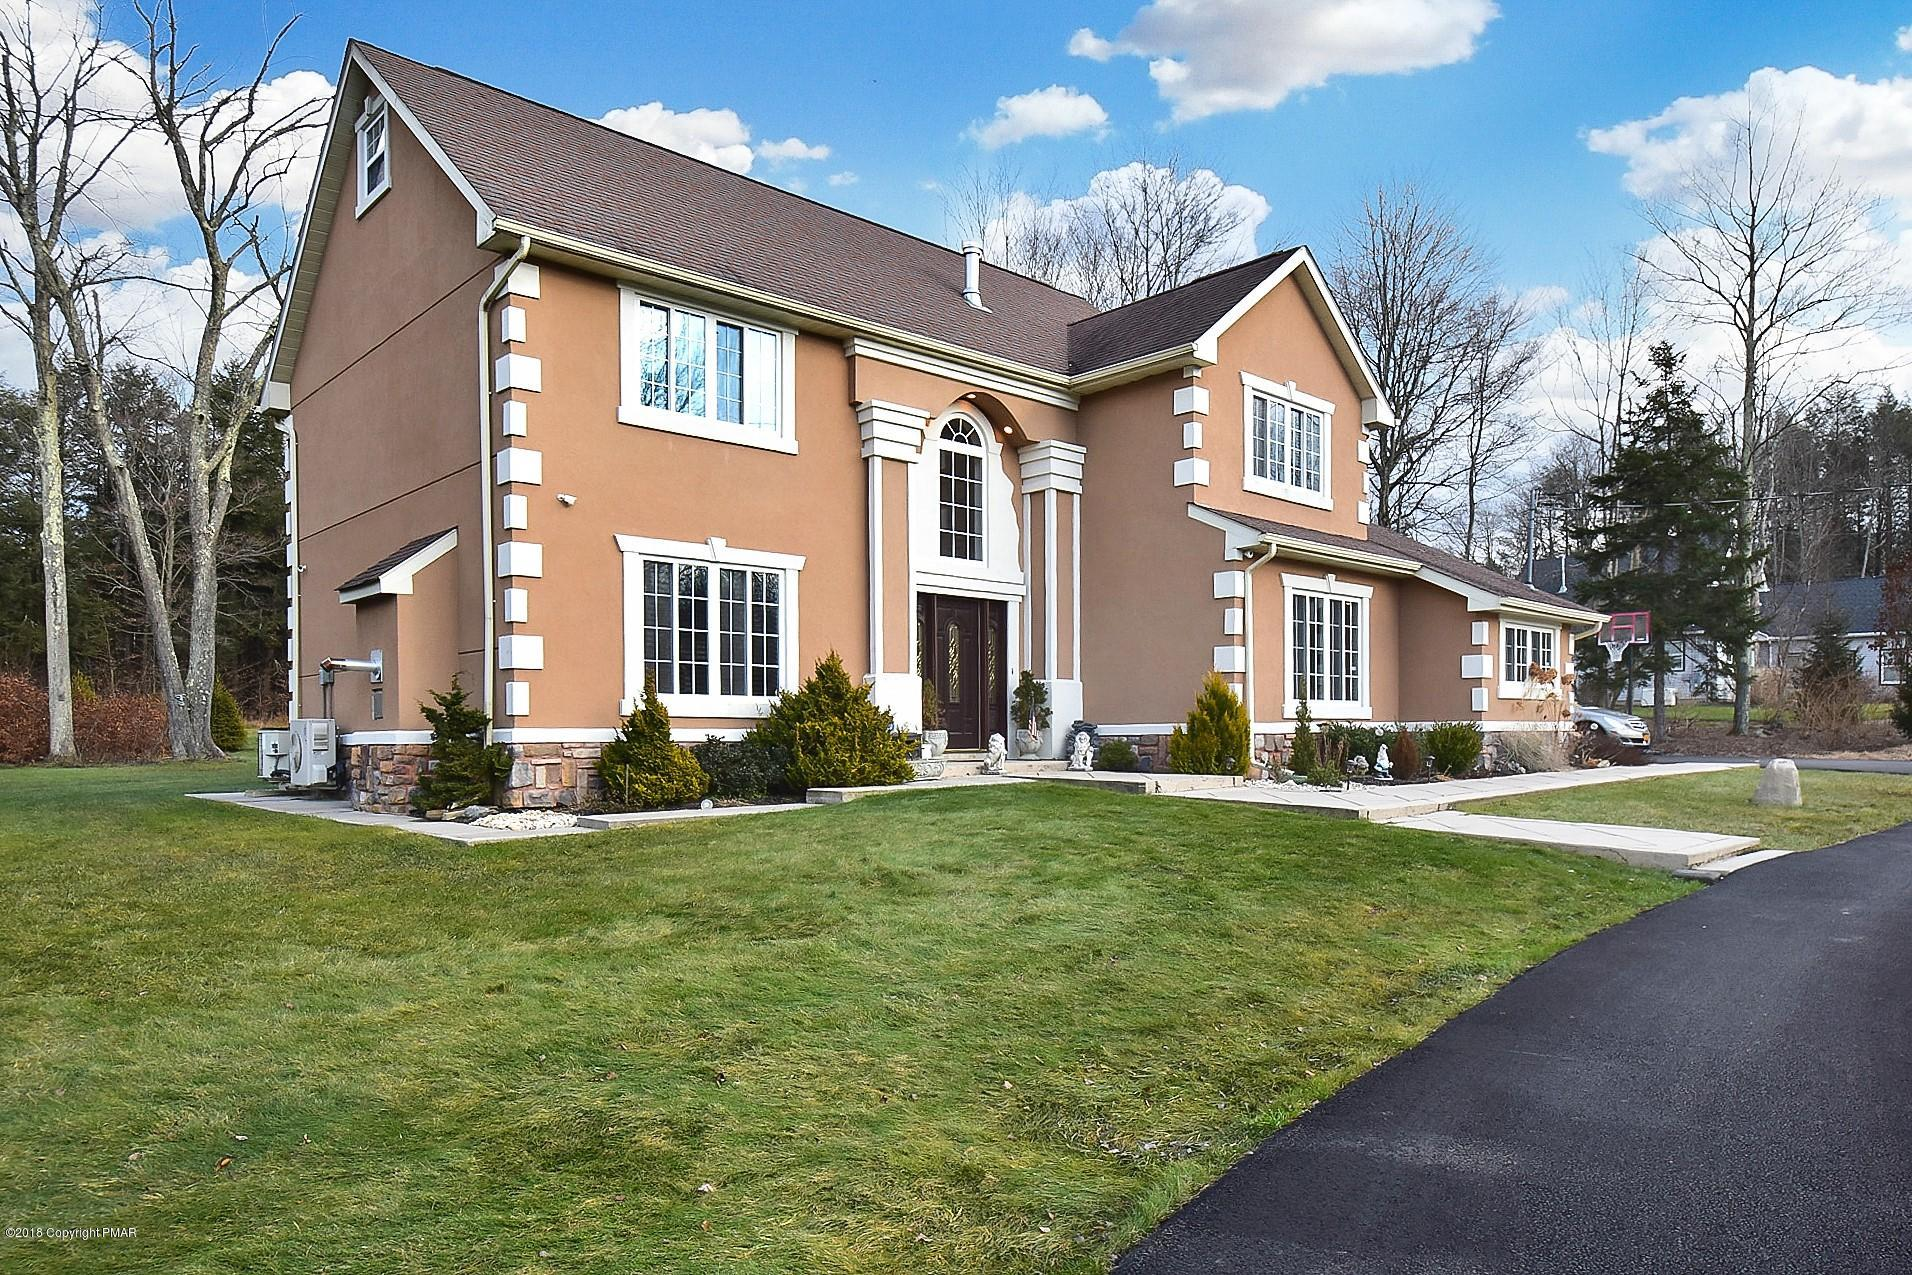 154 Cranberry Dr, Blakeslee, PA 18610